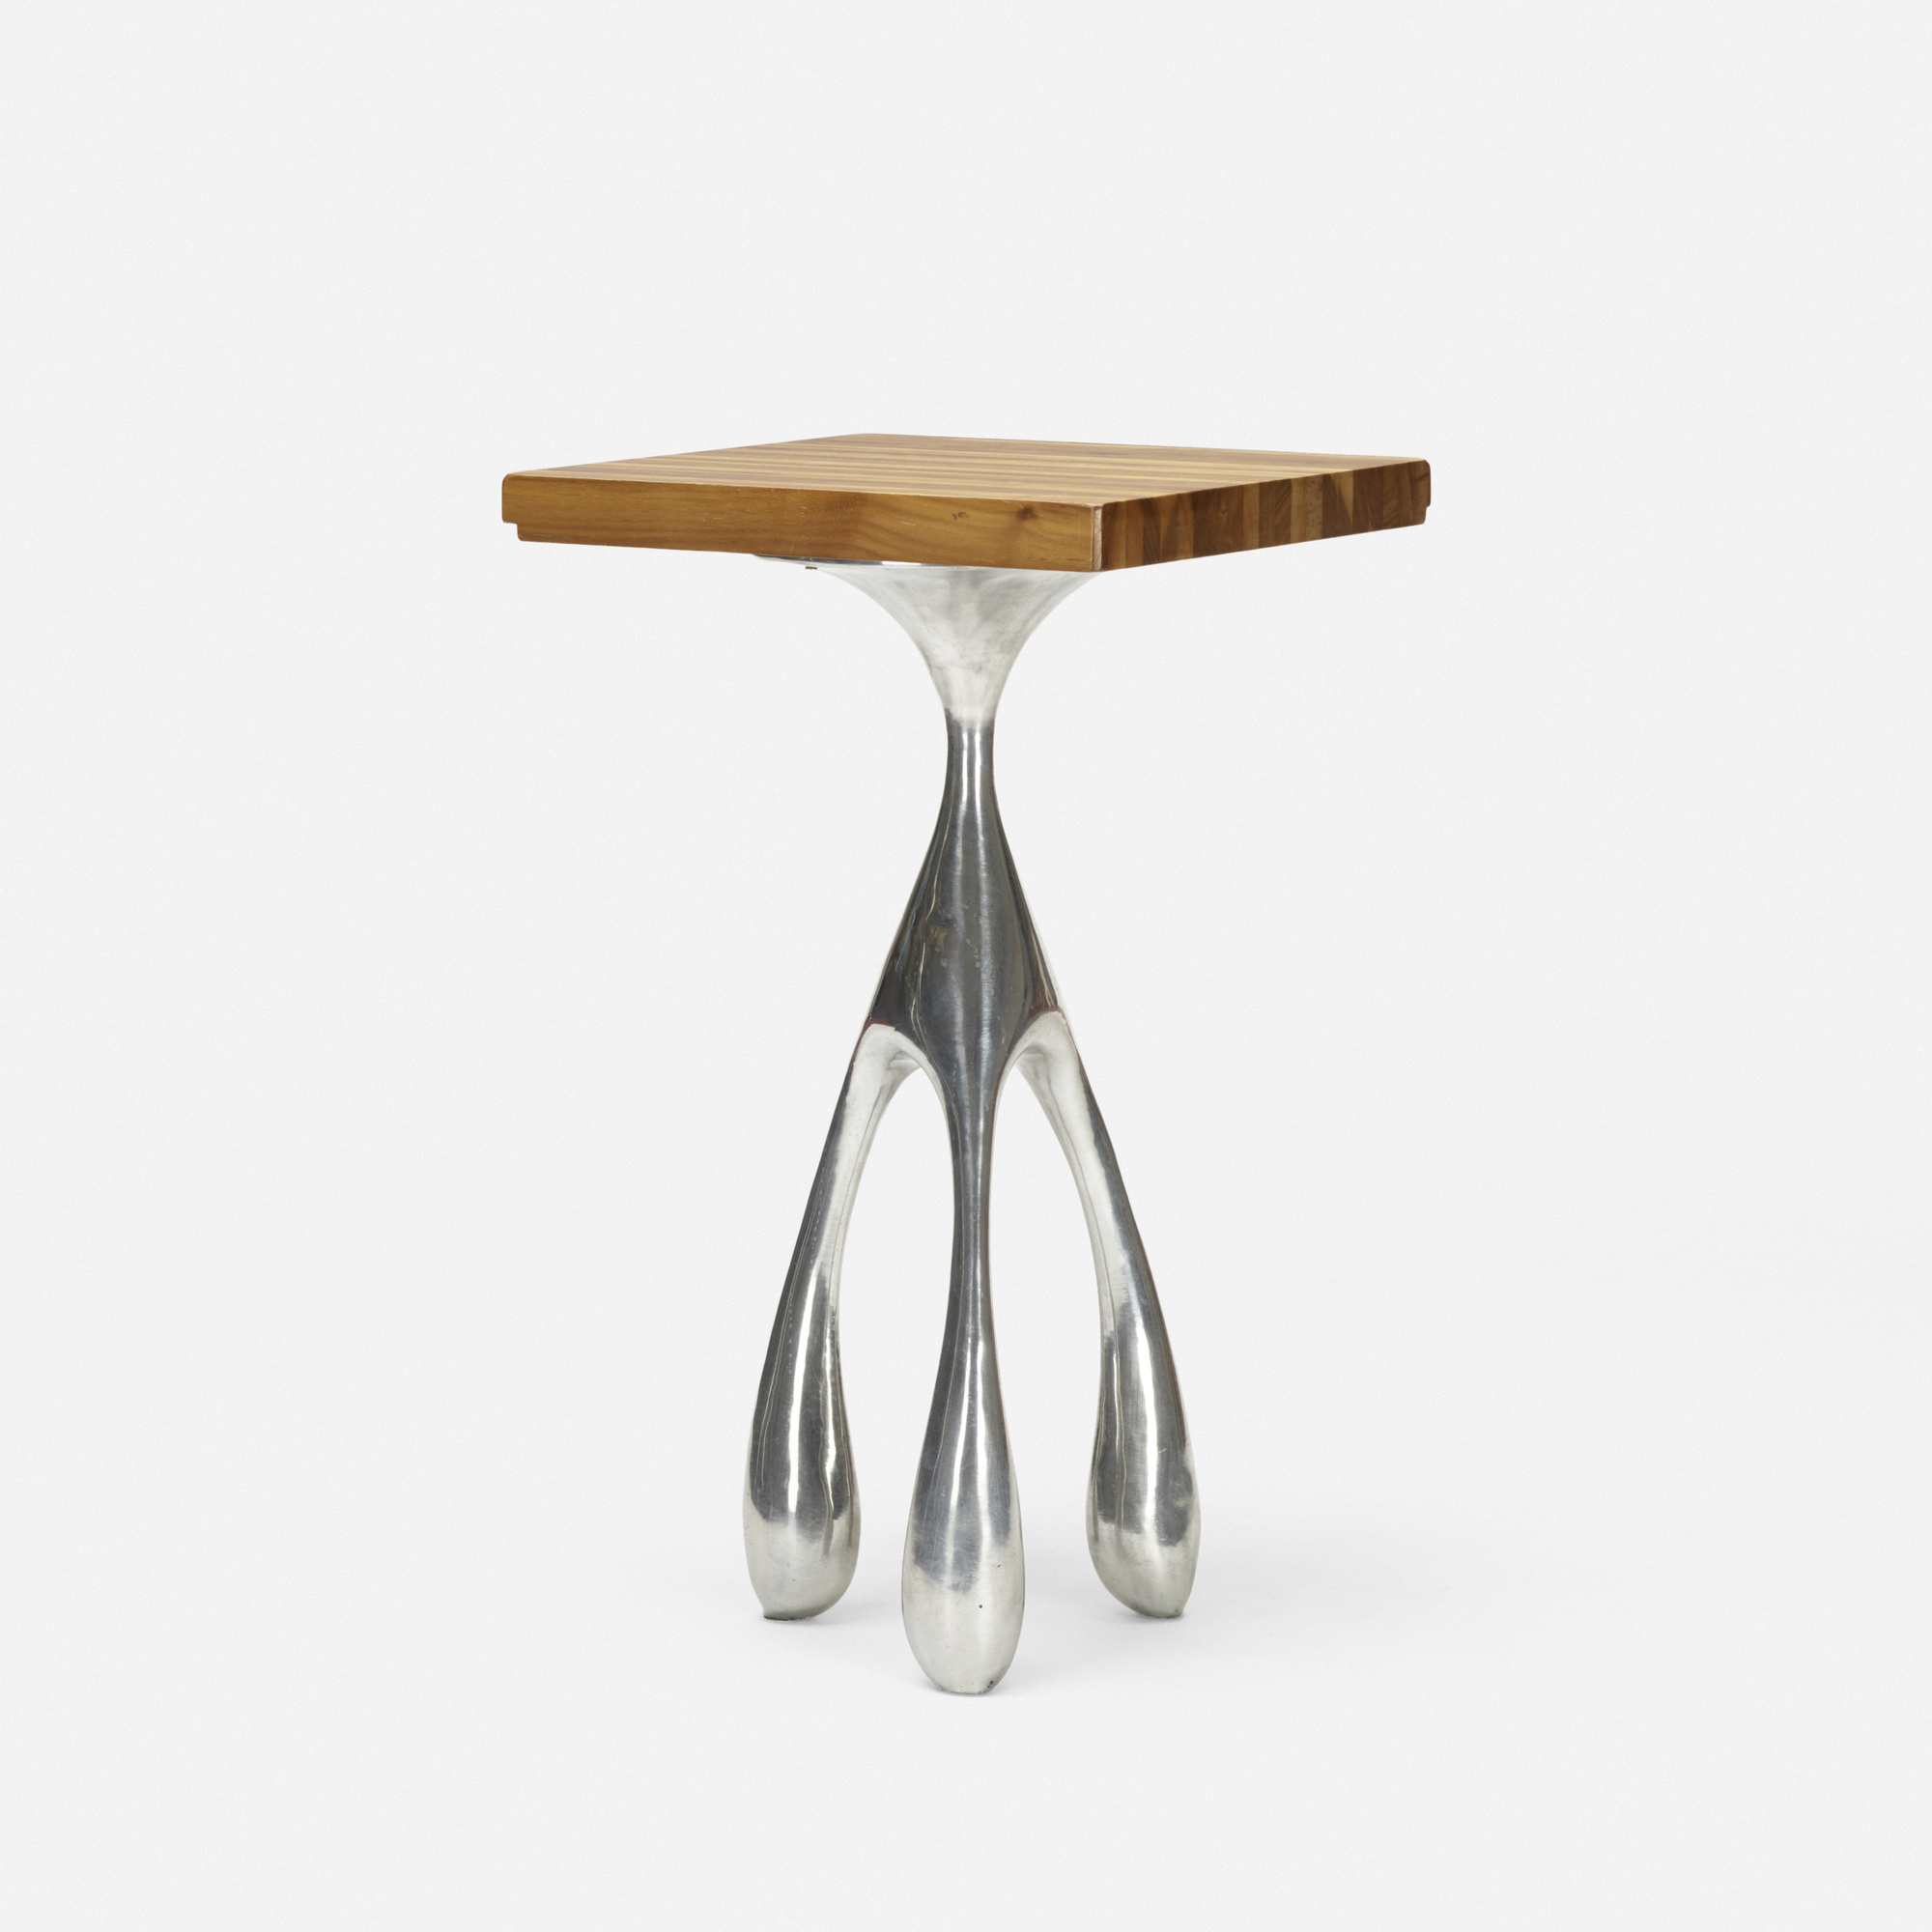 142: Jordan Mozer / occasional table from Bob San, Chicago (1 of 2)